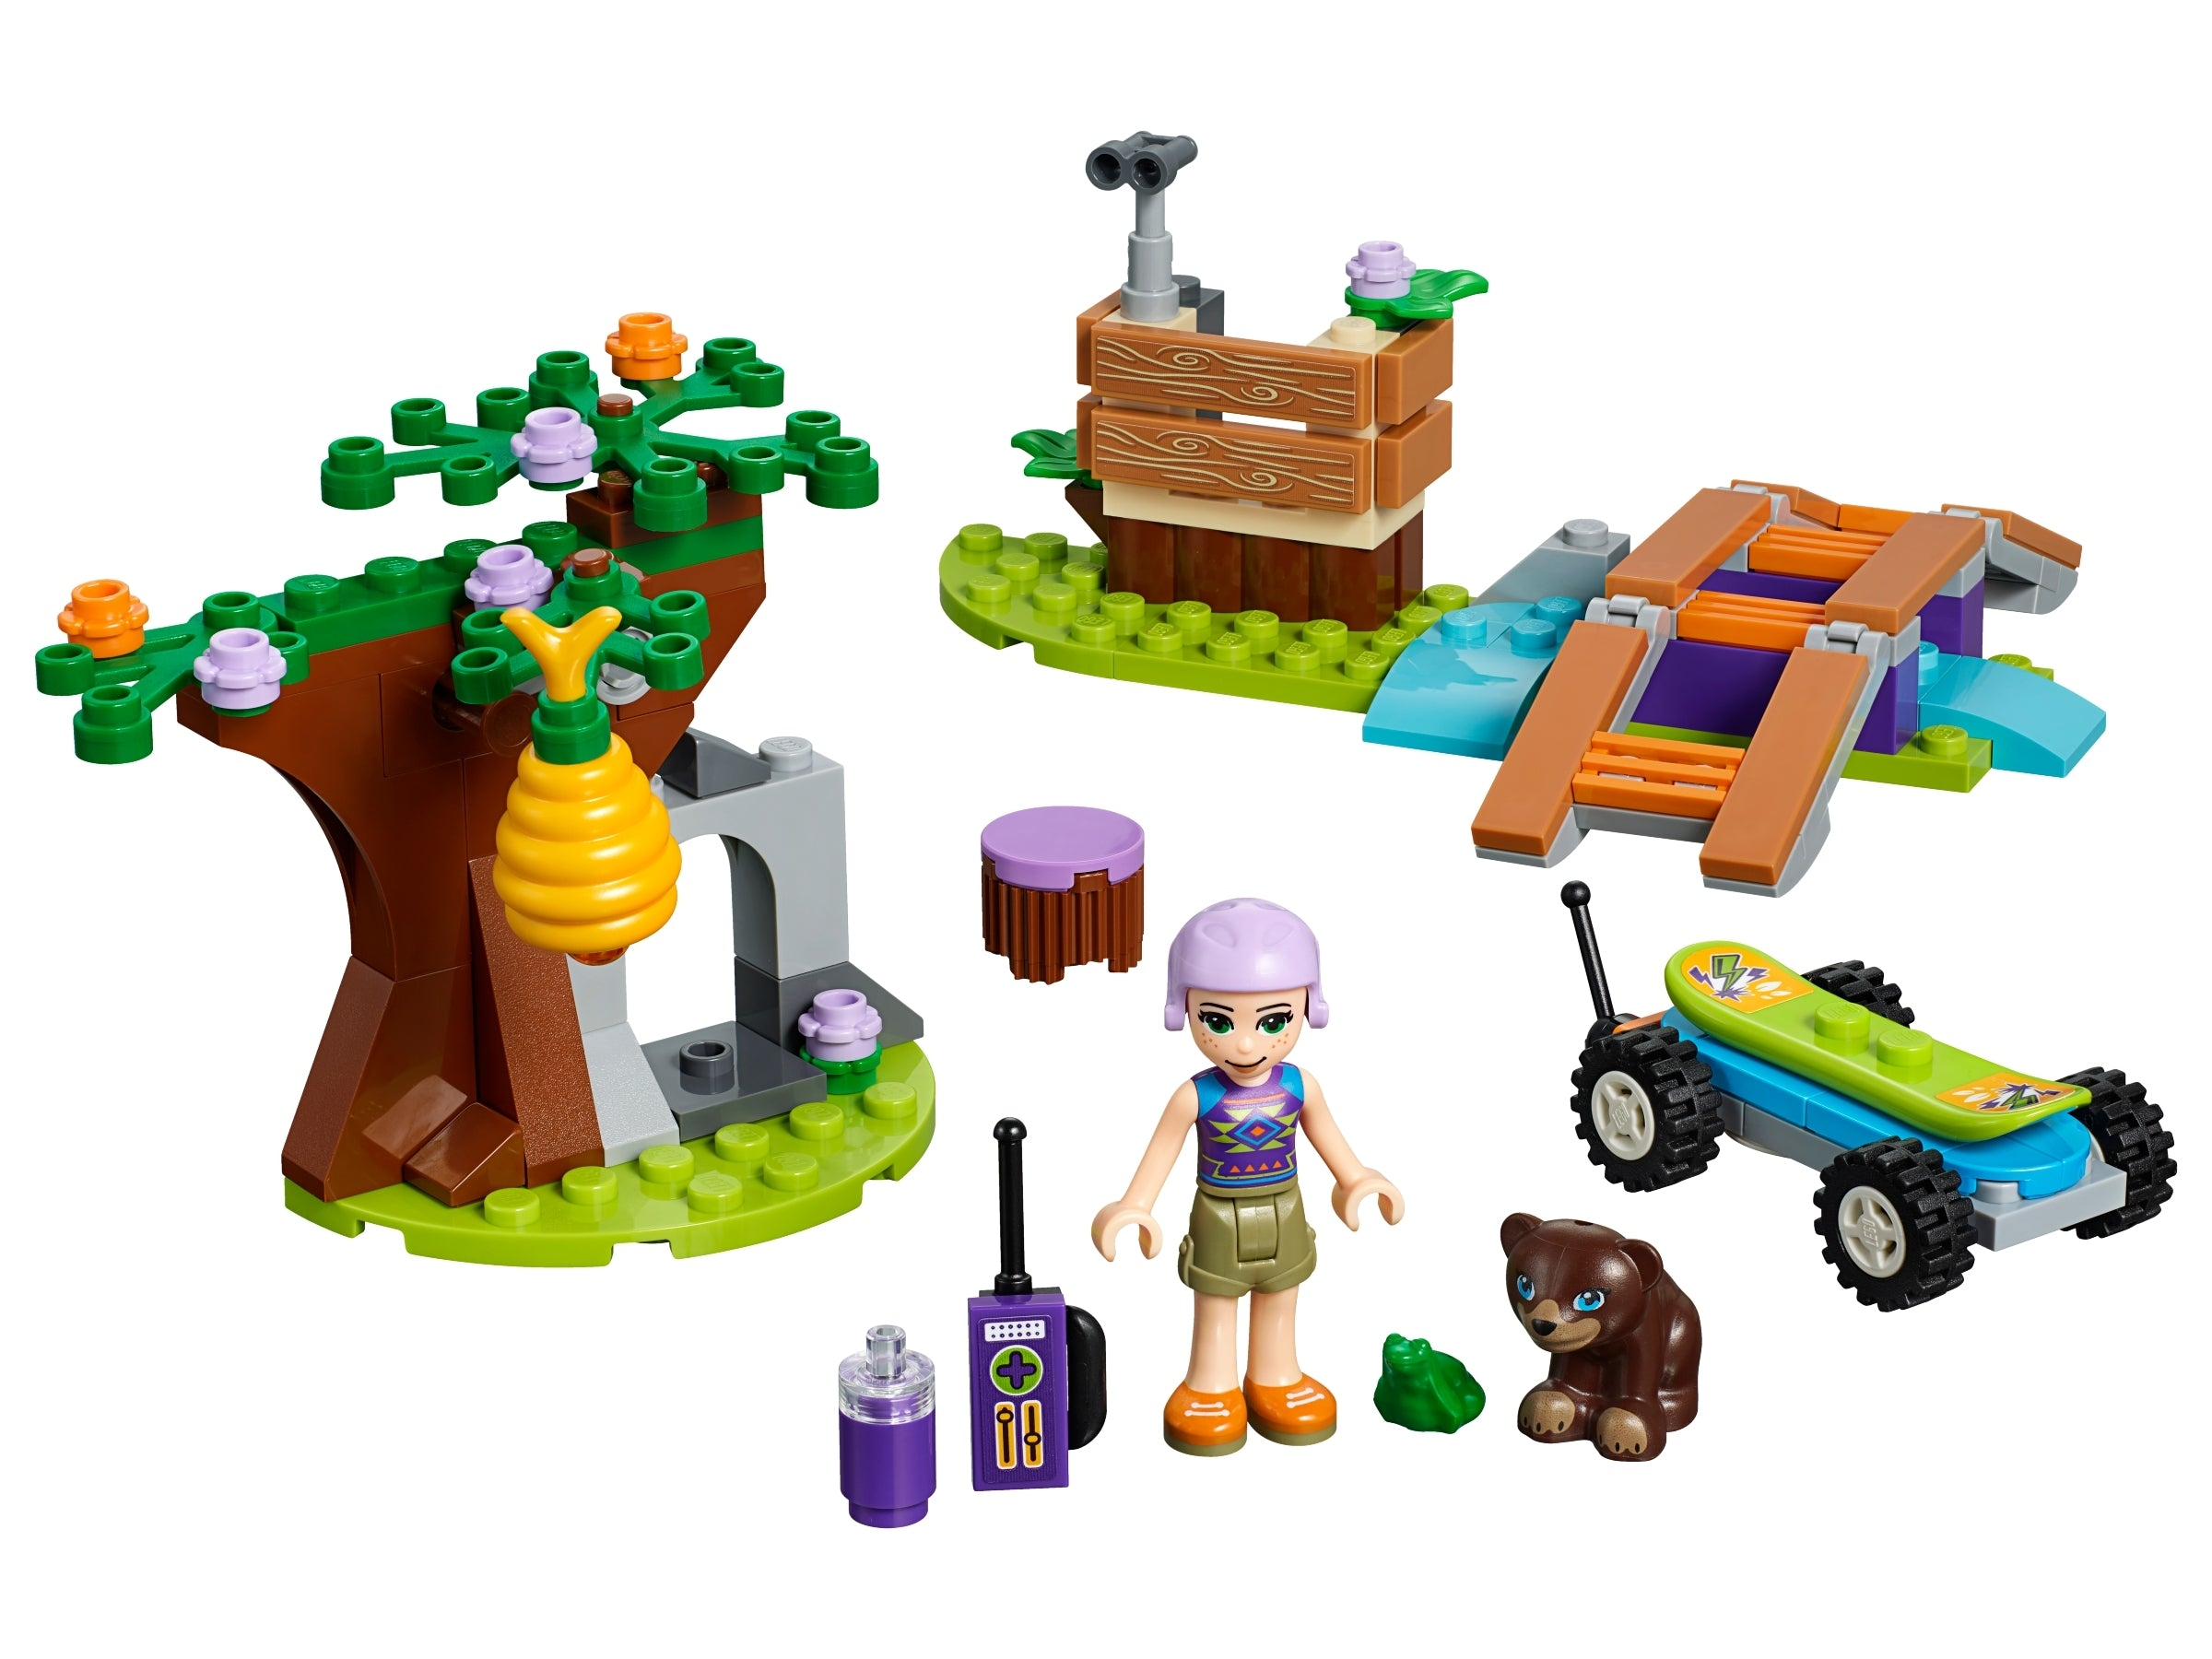 LEGO 41363 Mia's Forest Adventure